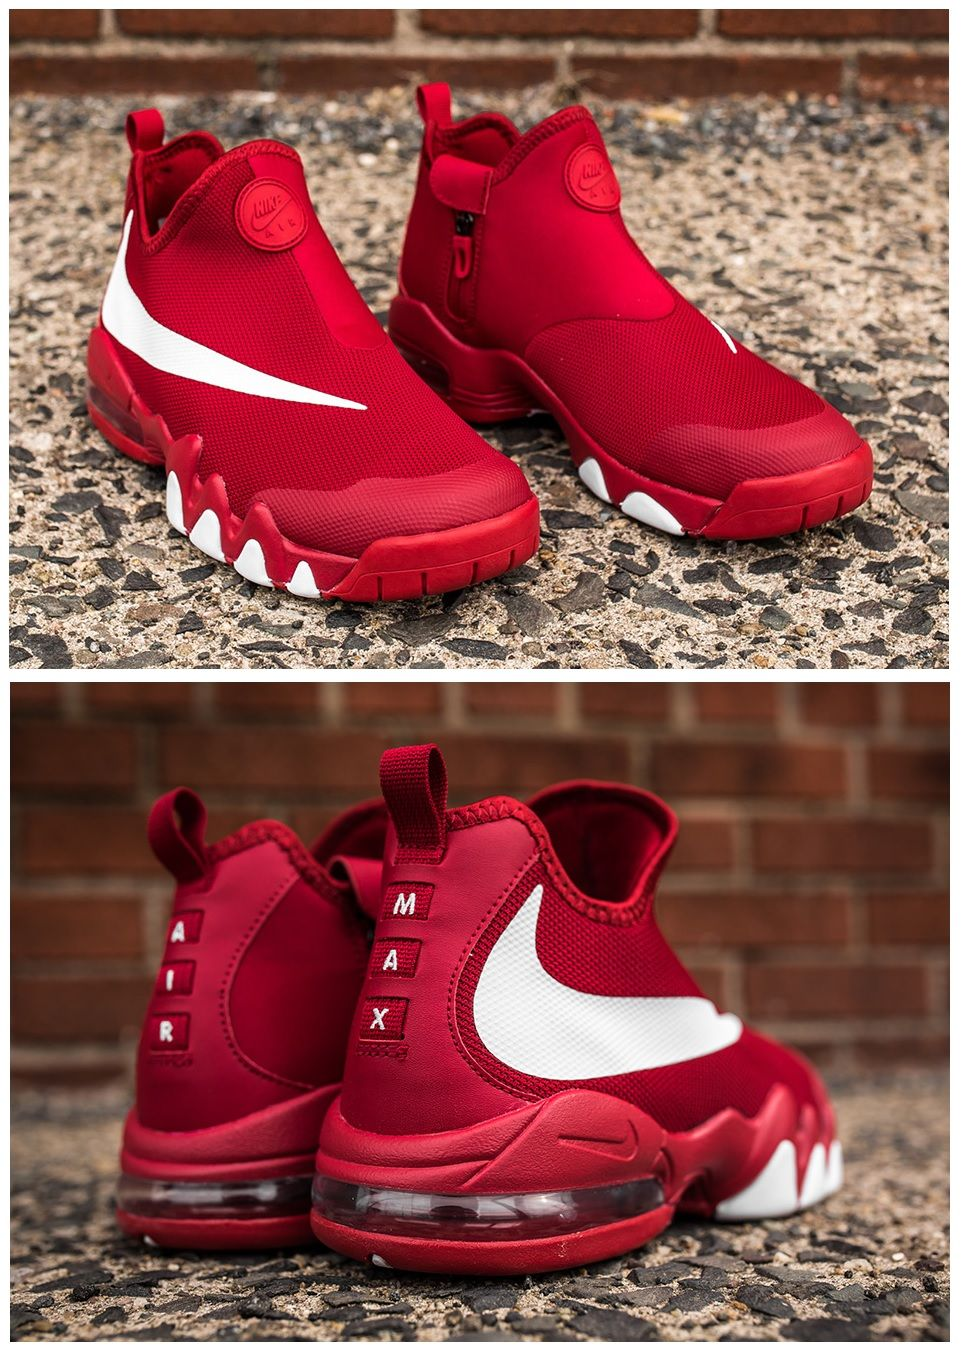 43bf174af124 Nike Big Swoosh Charles Barkley  University Red. Find this Pin and more on  Shoes ...